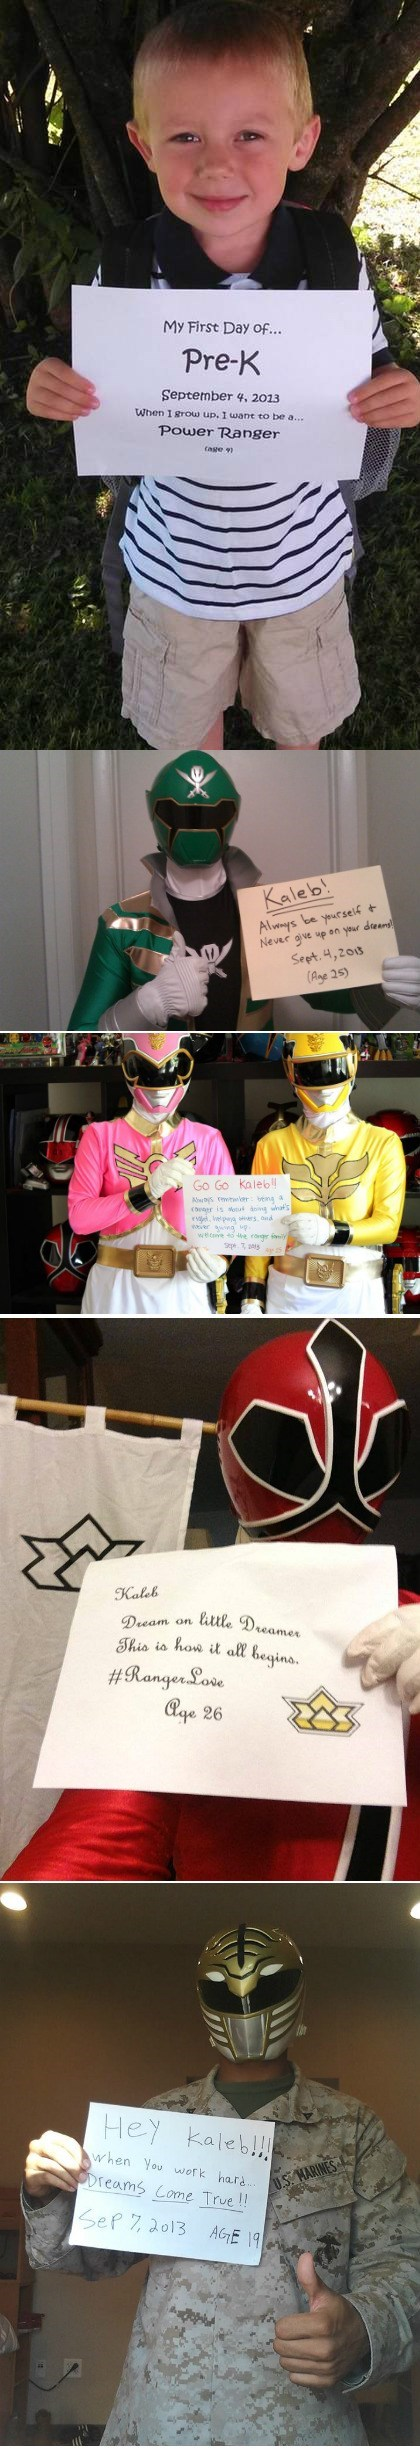 Power Rangers from Around the Internet Stand in Support of This Little Guy's Dream